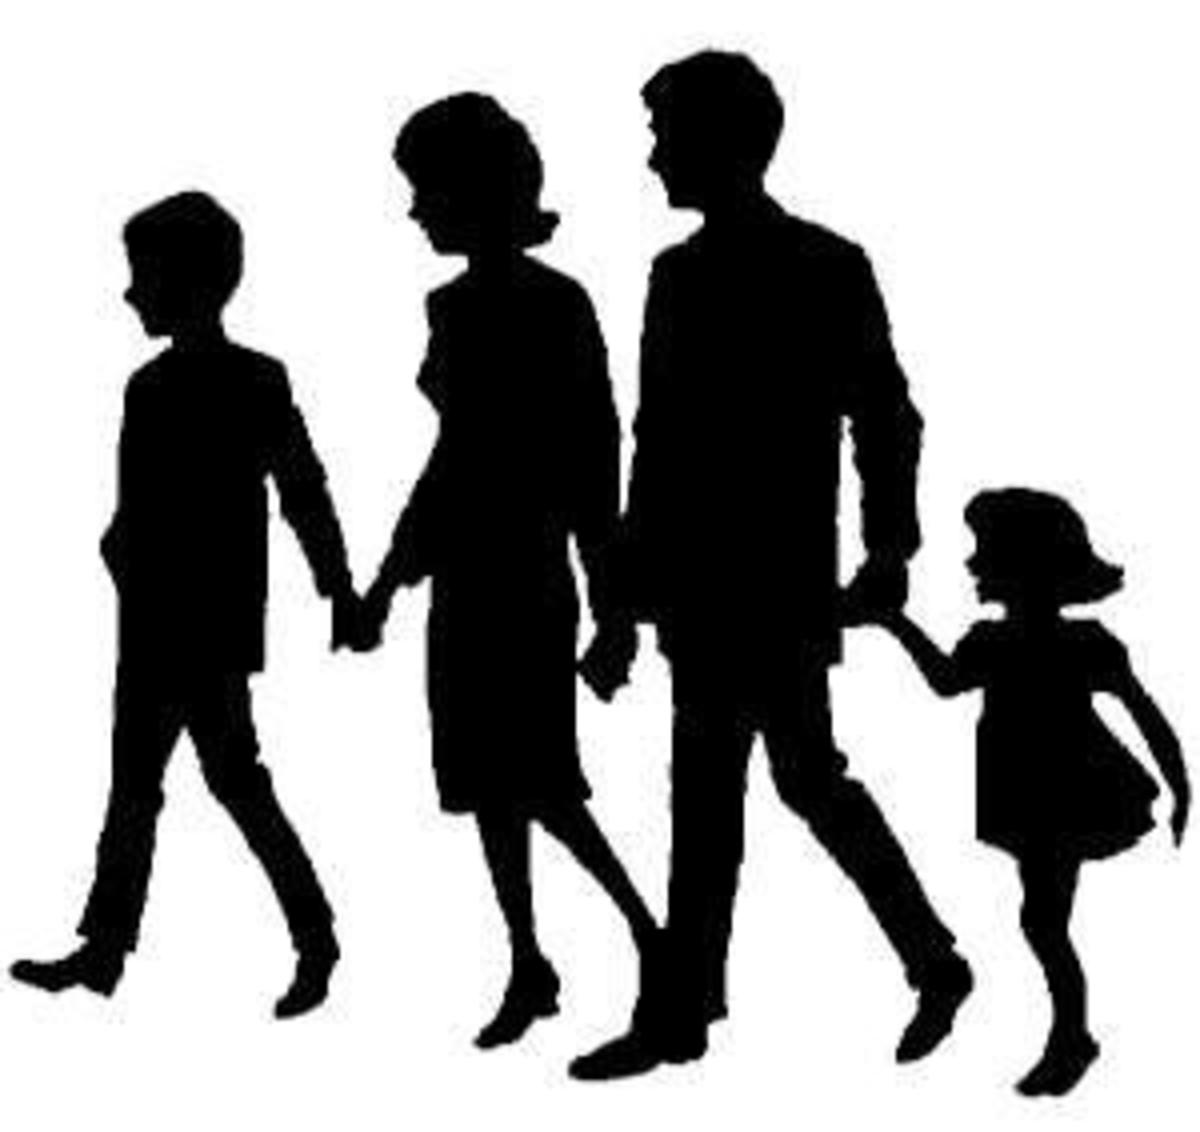 the-one-two-three-four-thoughts-on-love-and-family-an-acrostic-poem